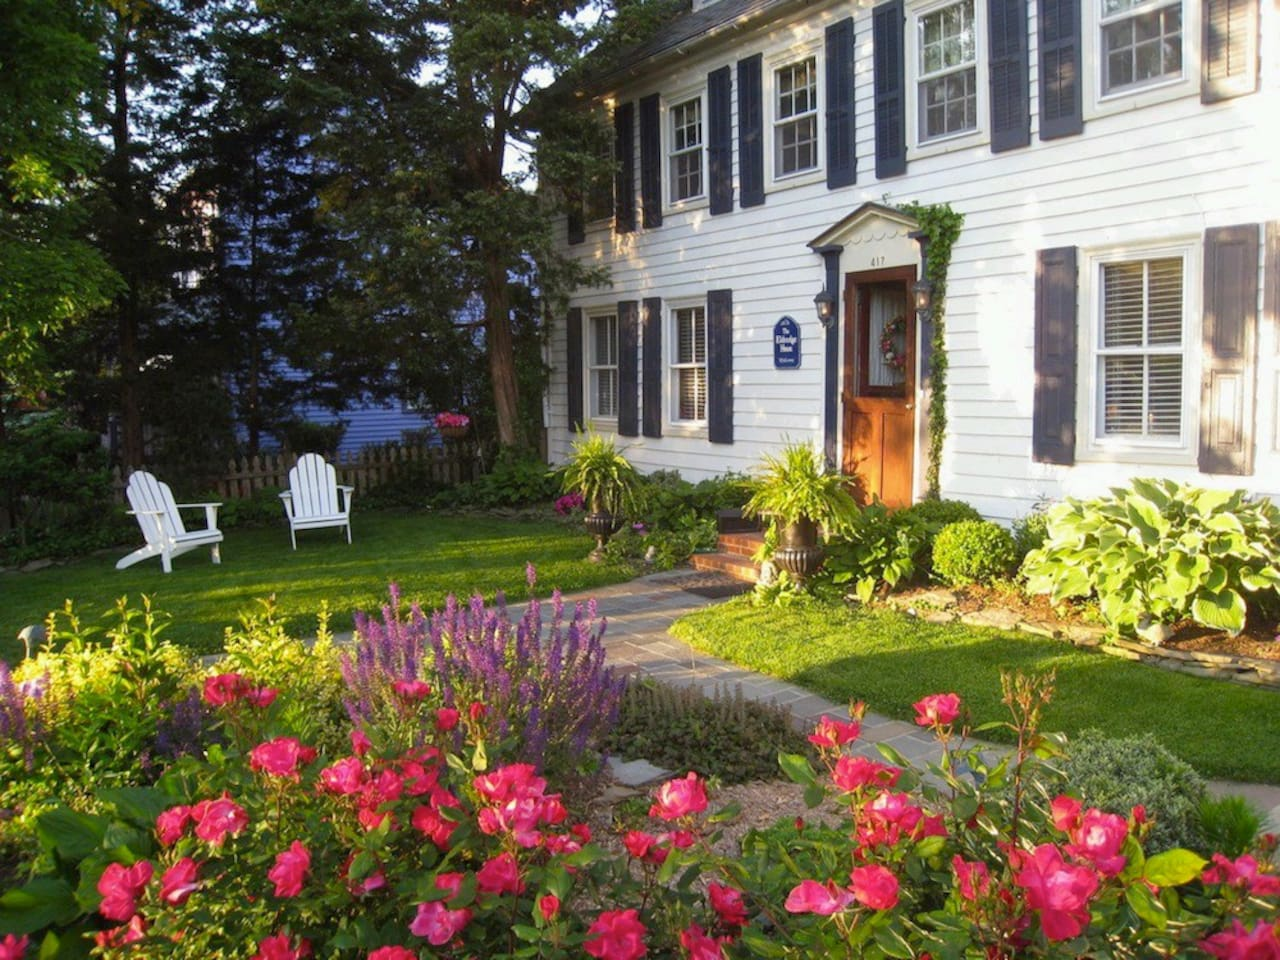 The Eldredge House is located close to Cape May's downtown and the beach. It is a 10 minute walk to either.